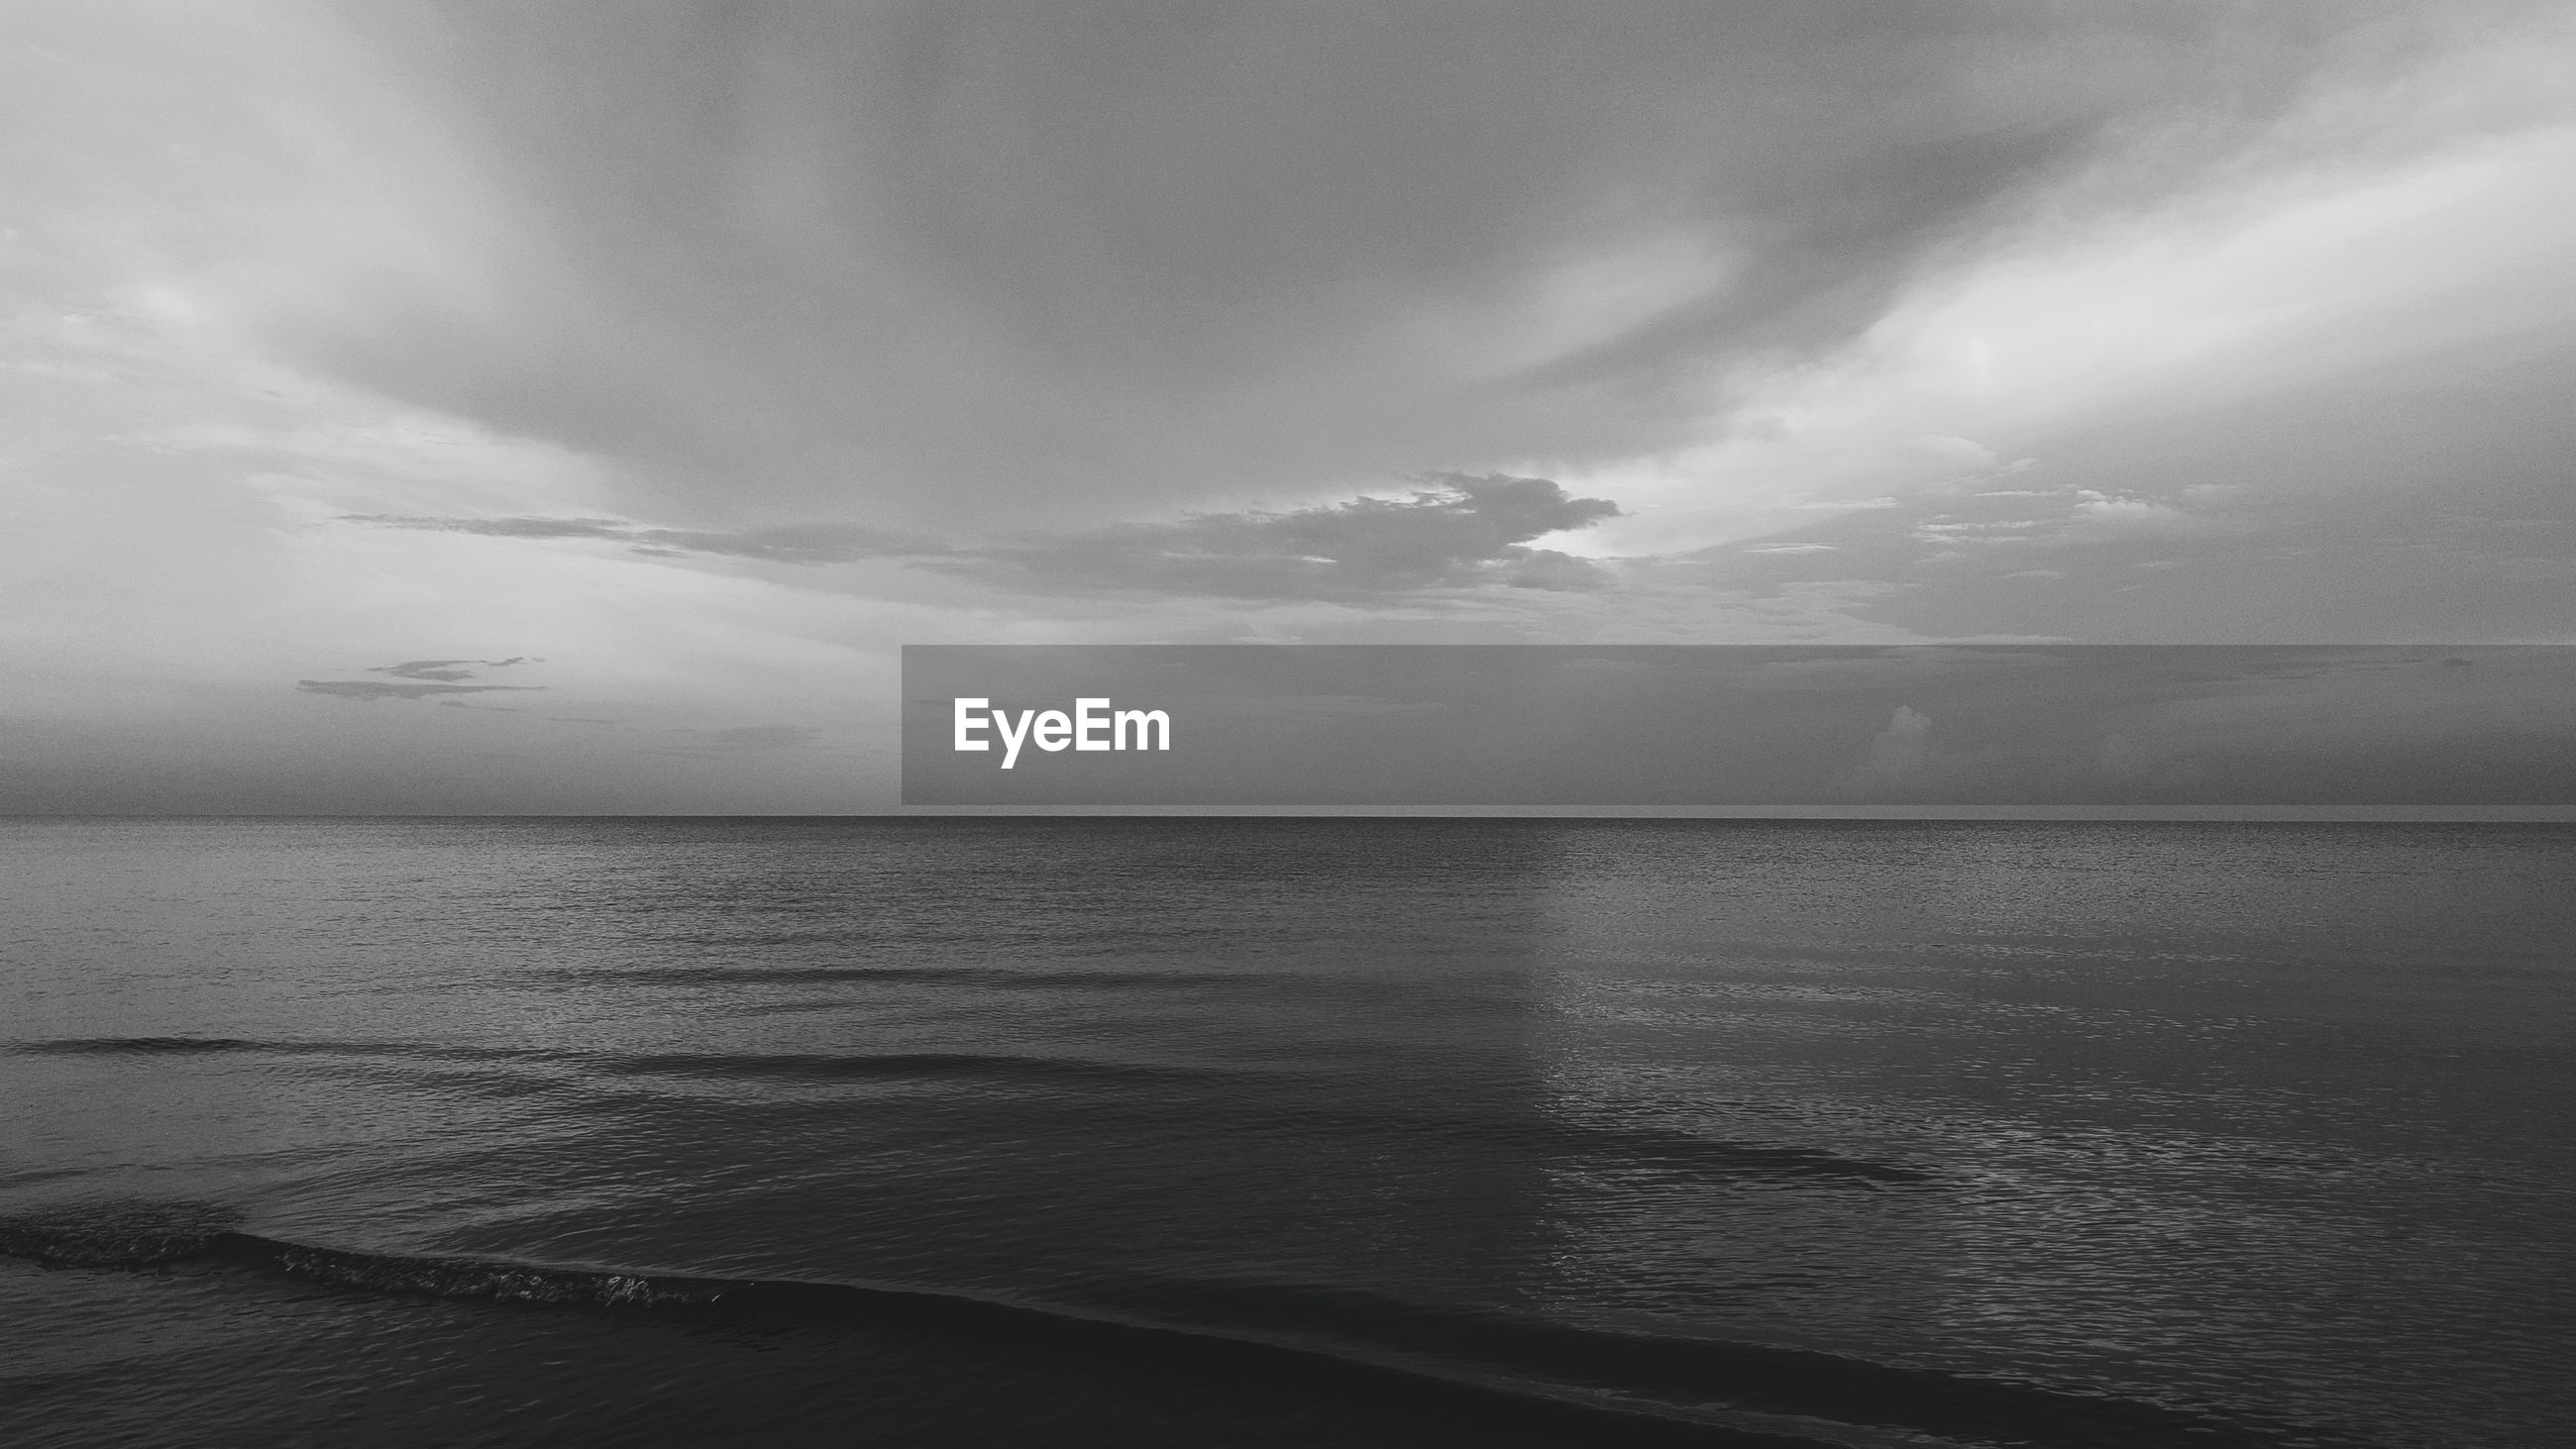 SCENIC VIEW OF SEASCAPE AGAINST CLOUDY SKY